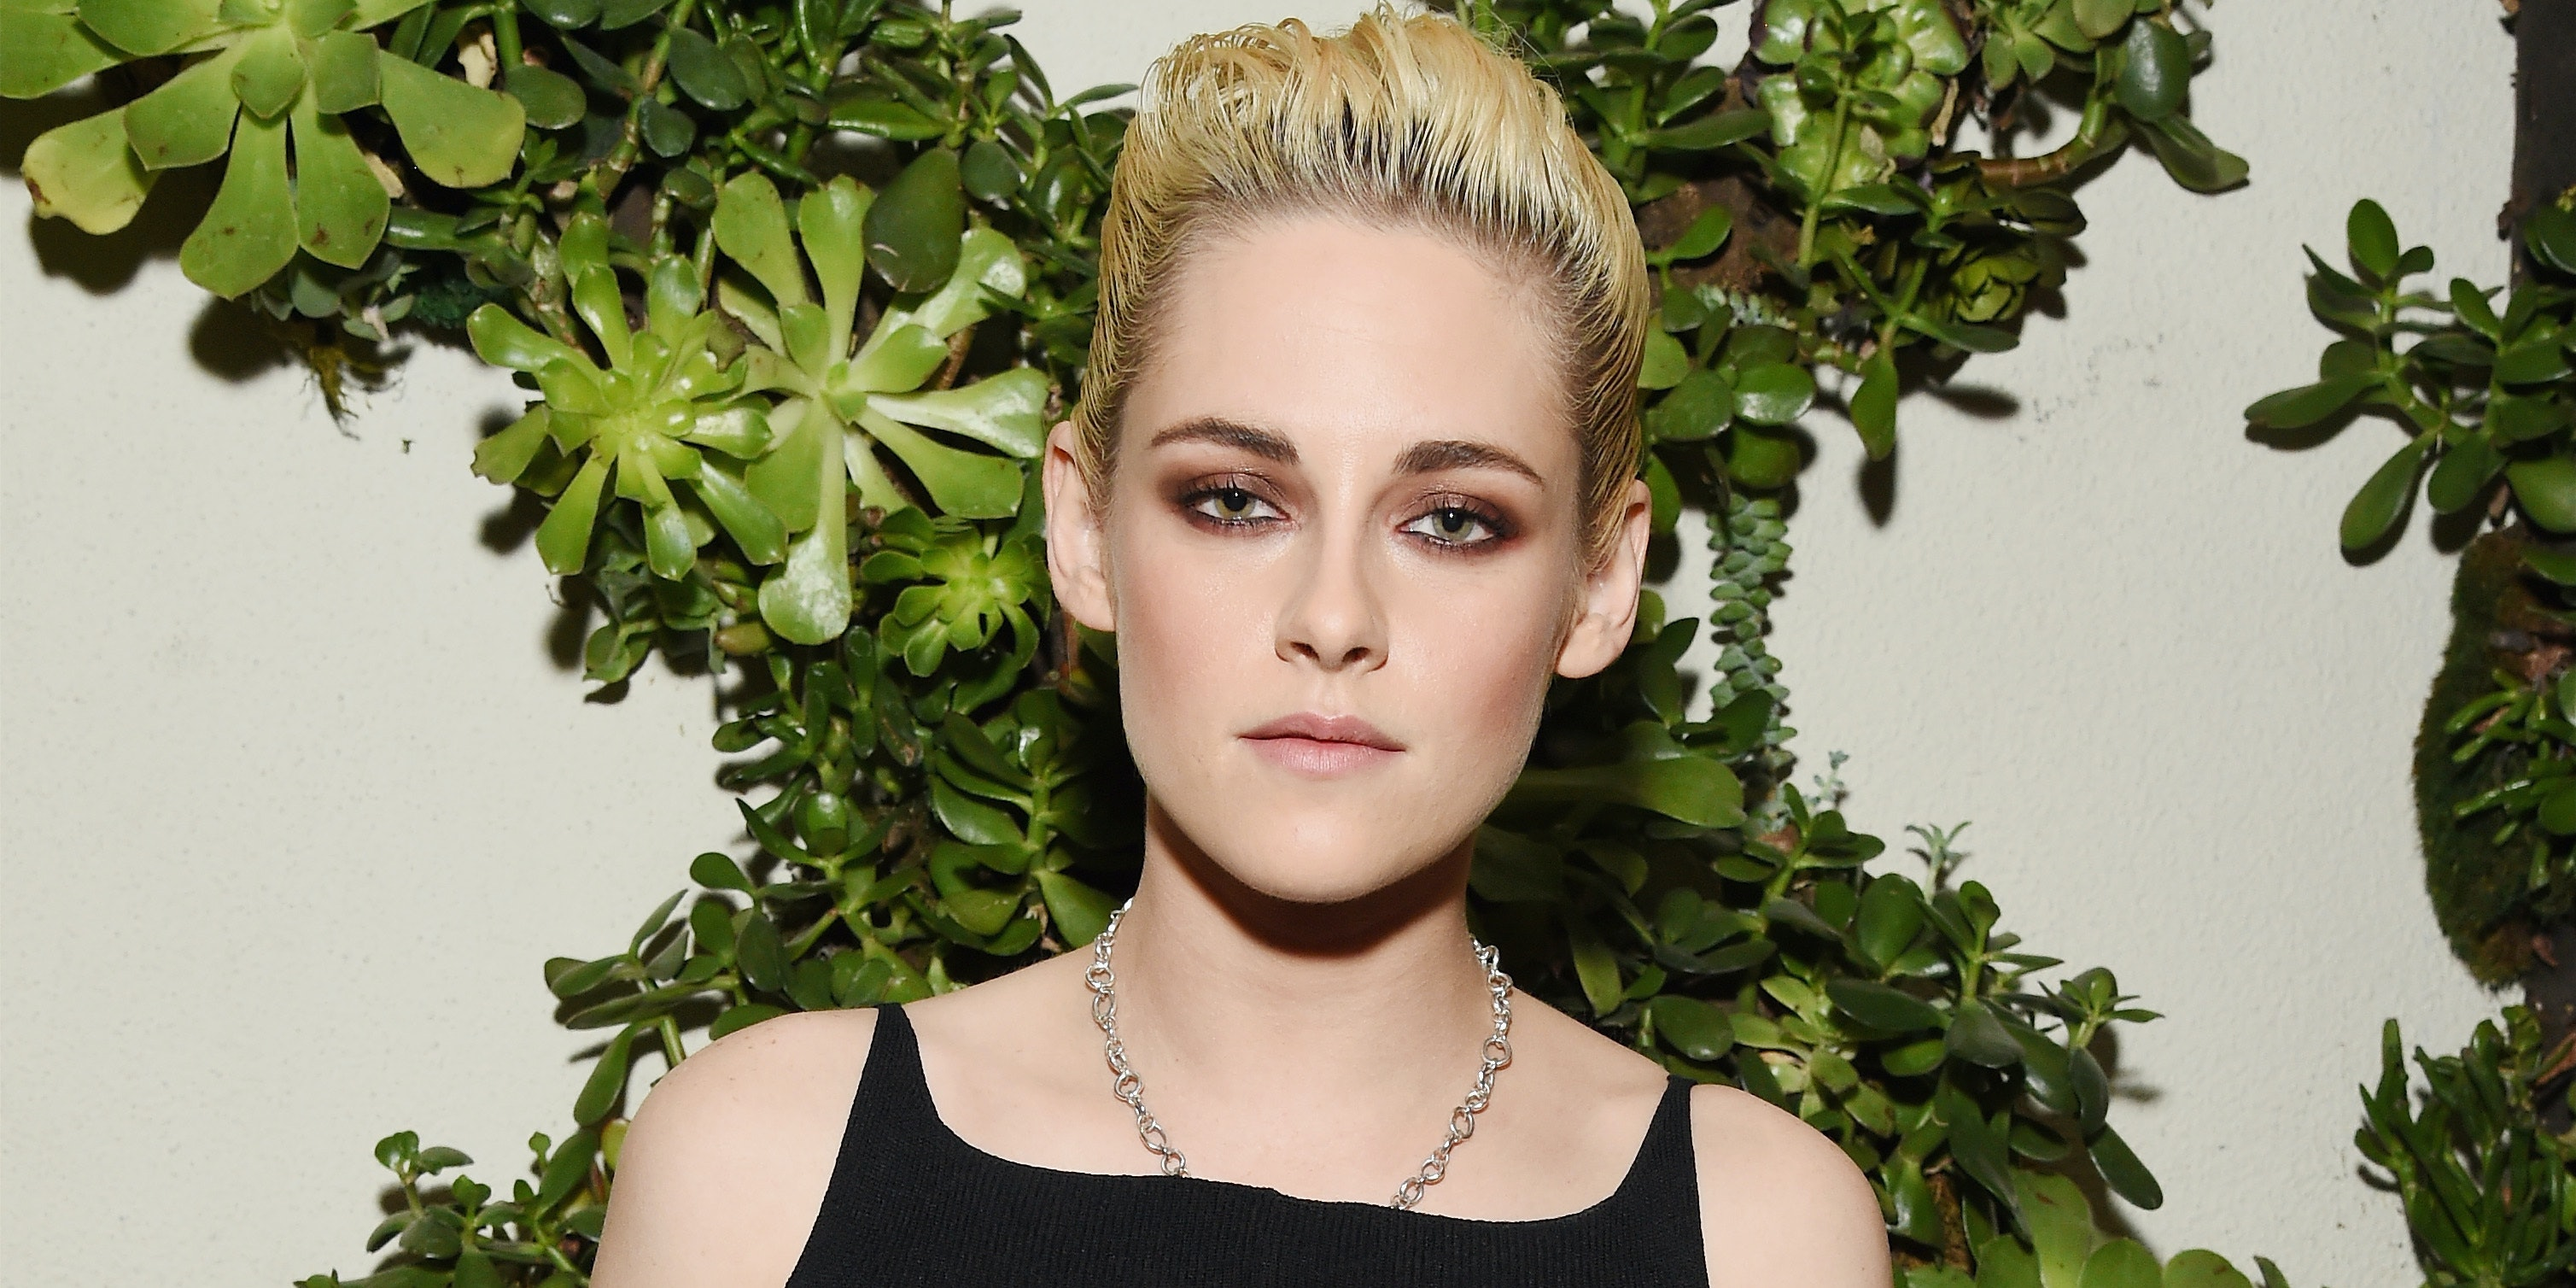 Honoree Kristen Stewart attends the 23rd Annual ELLE Women In Hollywood Awards at Four Seasons Hotel Los Angeles at Beverly Hills on October 24, 2016 in Los Angeles, California.